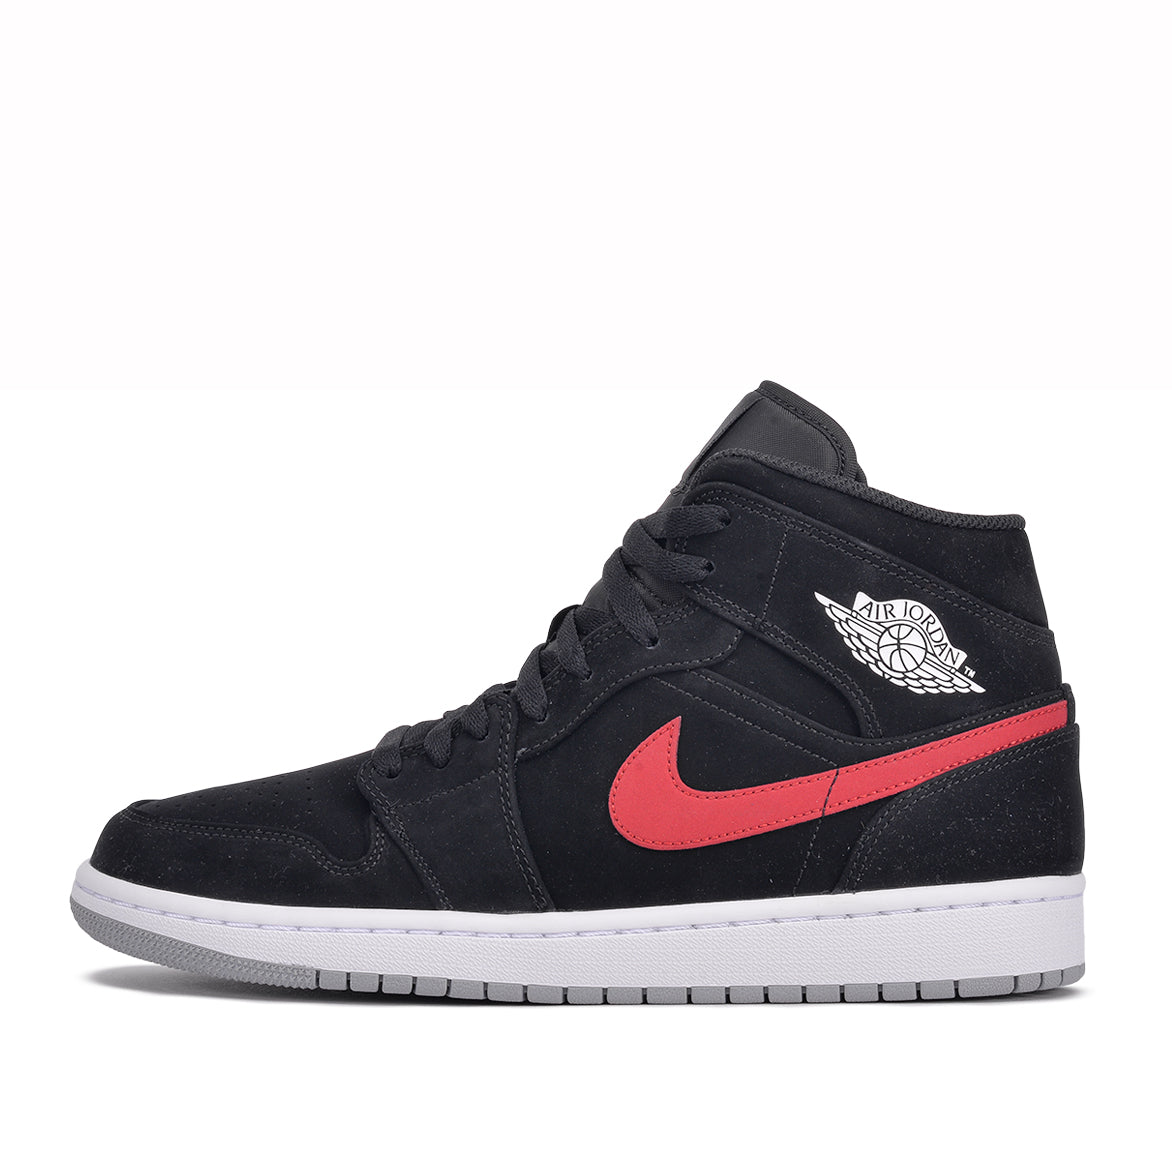 8b230096b3d8f AIR JORDAN 1 MID - BLACK   UNIVERSITY RED